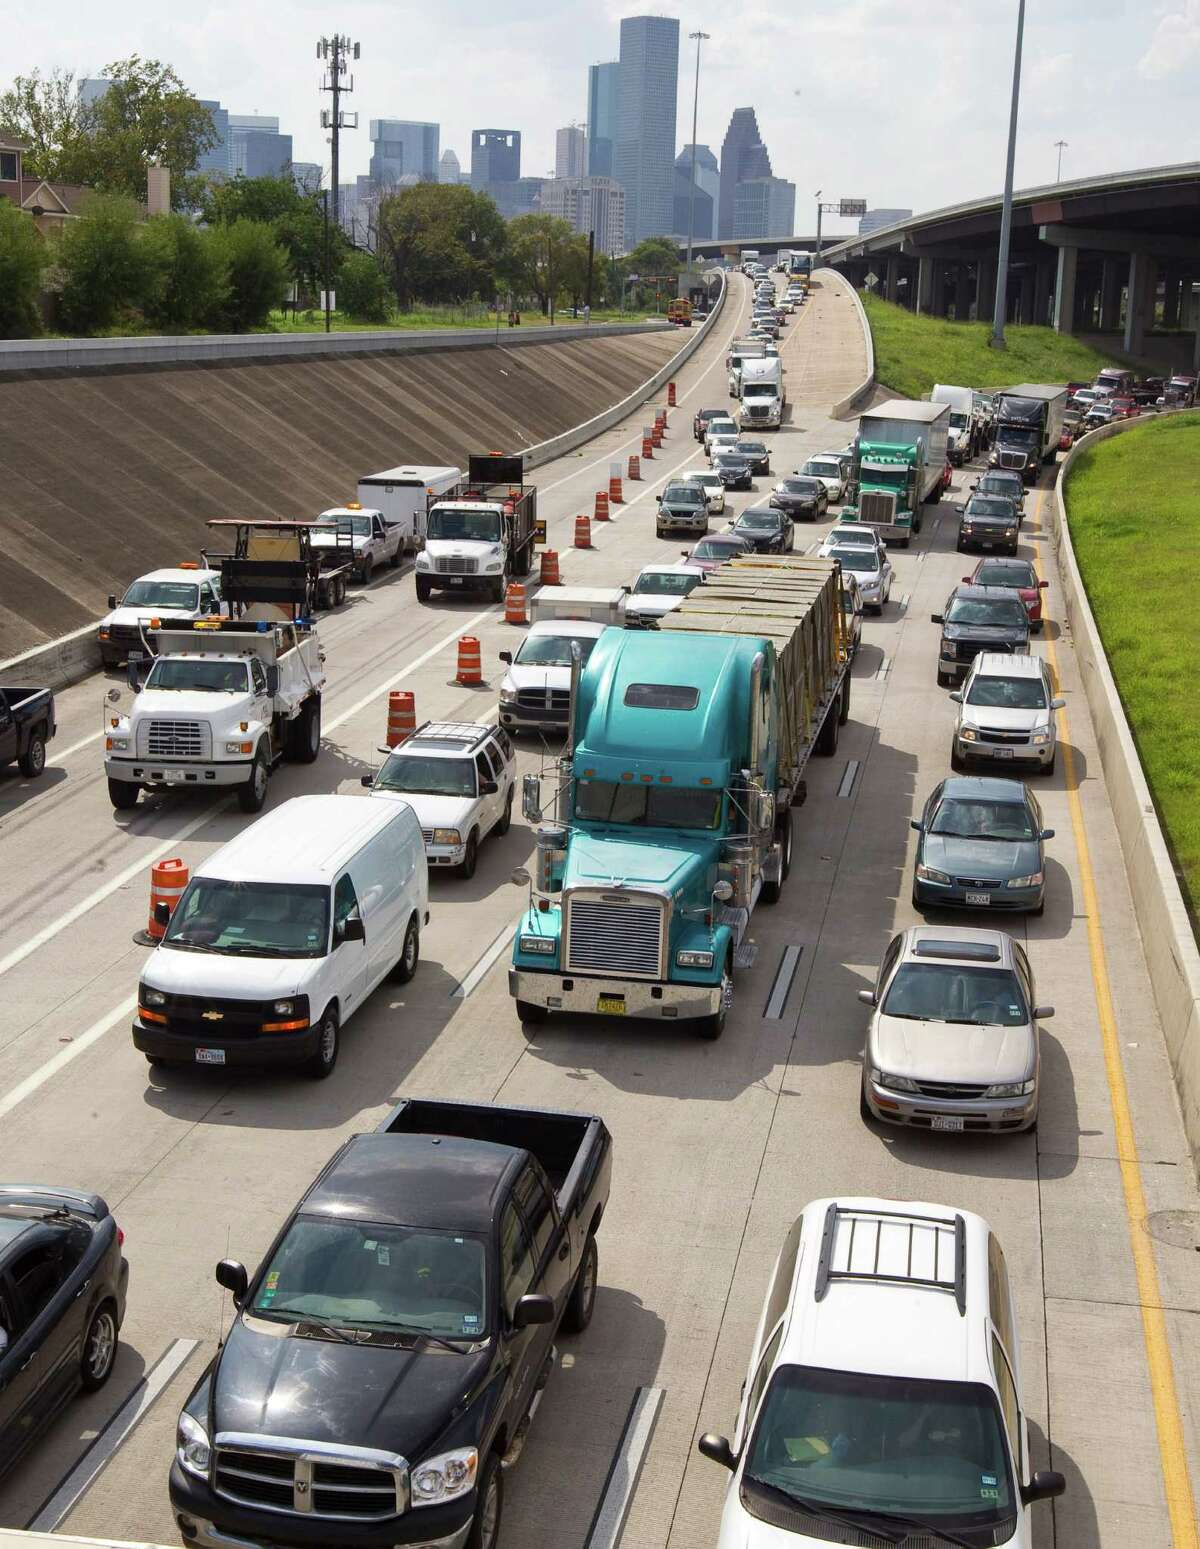 Traffic backs up Tuesday as an 18-wheeler wreck blocks lanes on Interstate 10 eastbound near U.S. 59. A report says Houston drivers spend hundreds of dollars extra each year because of accidents and congestion, which wastes time and fuel.